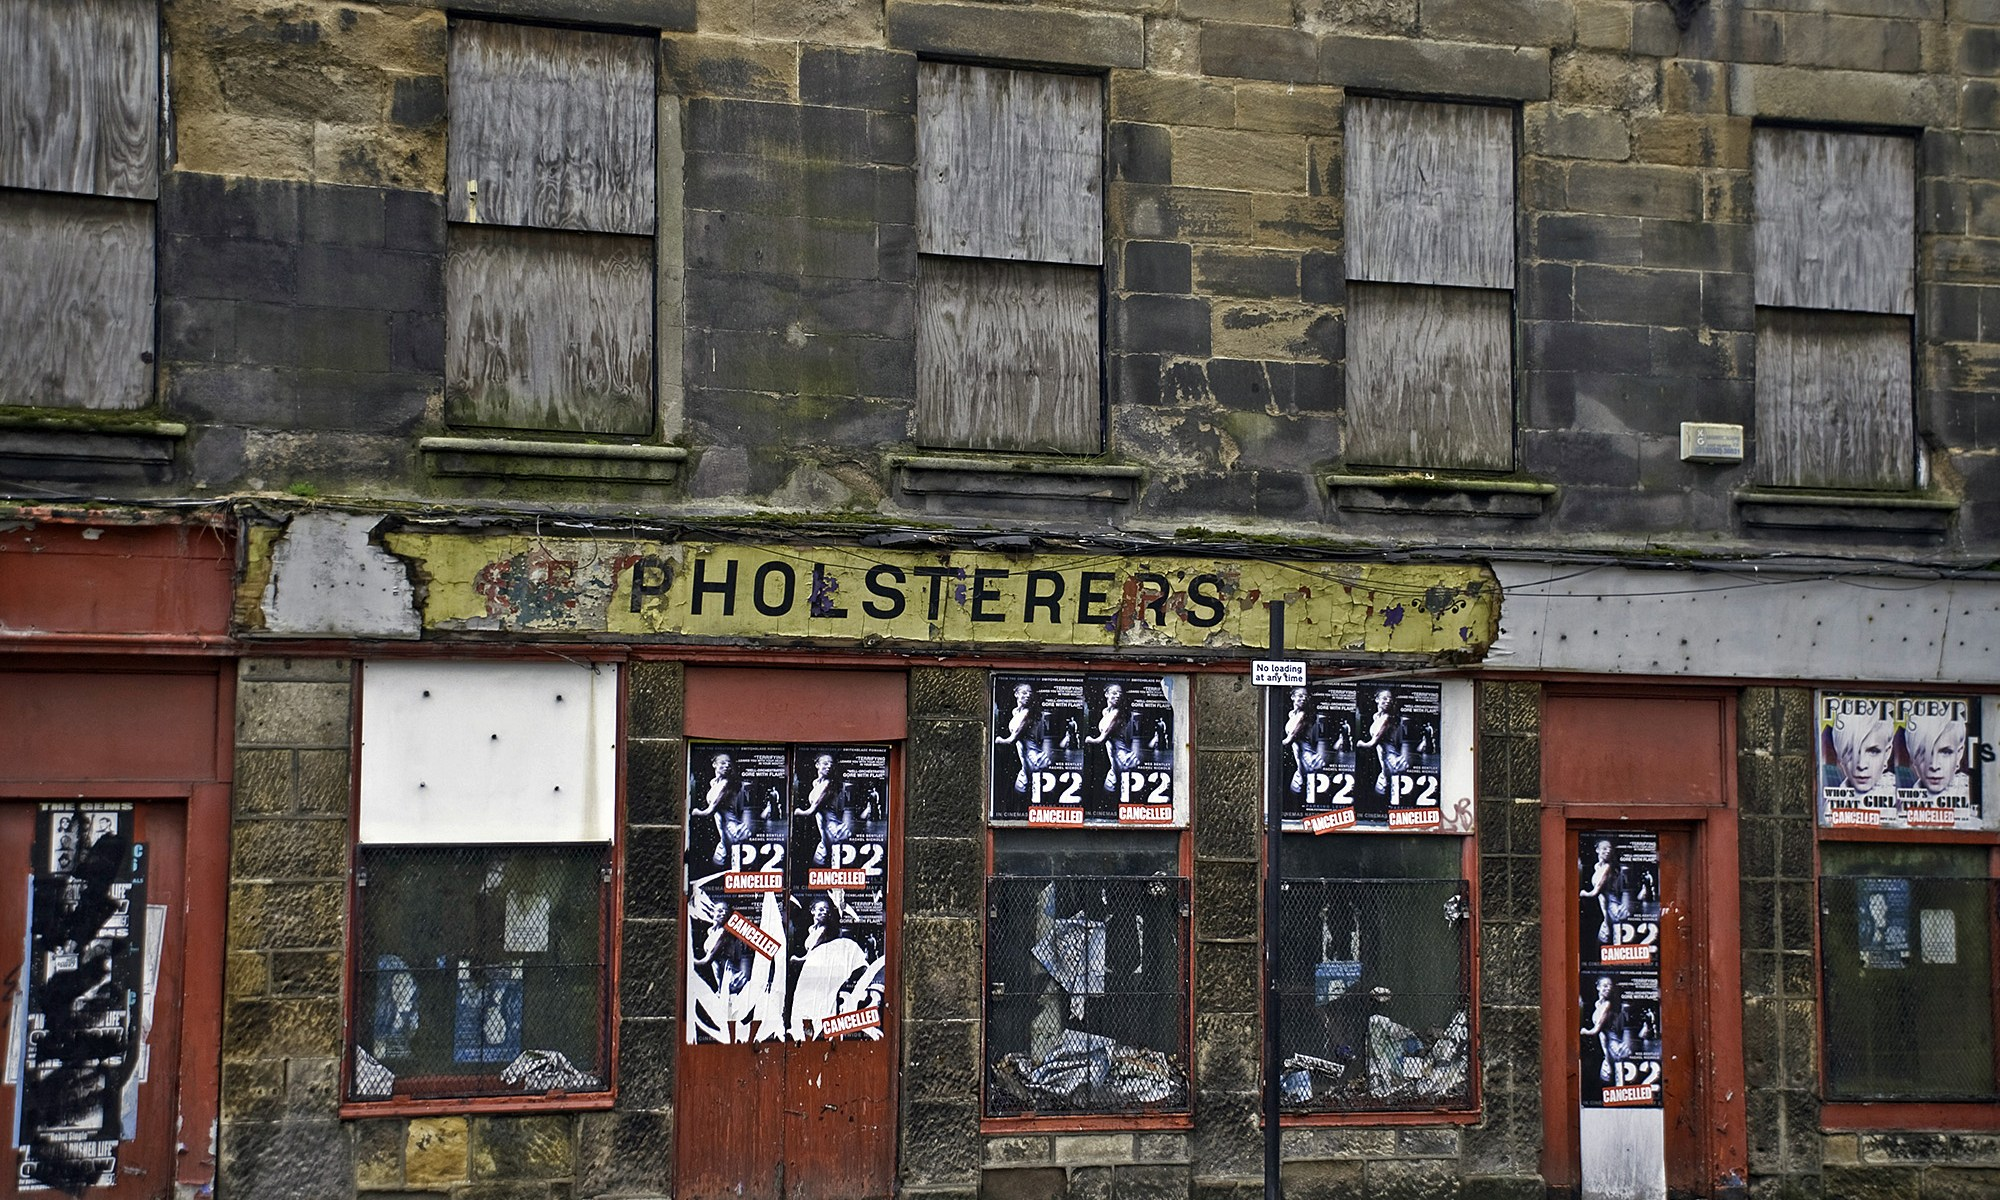 Urban Decay at Upholsterers - Glasgow